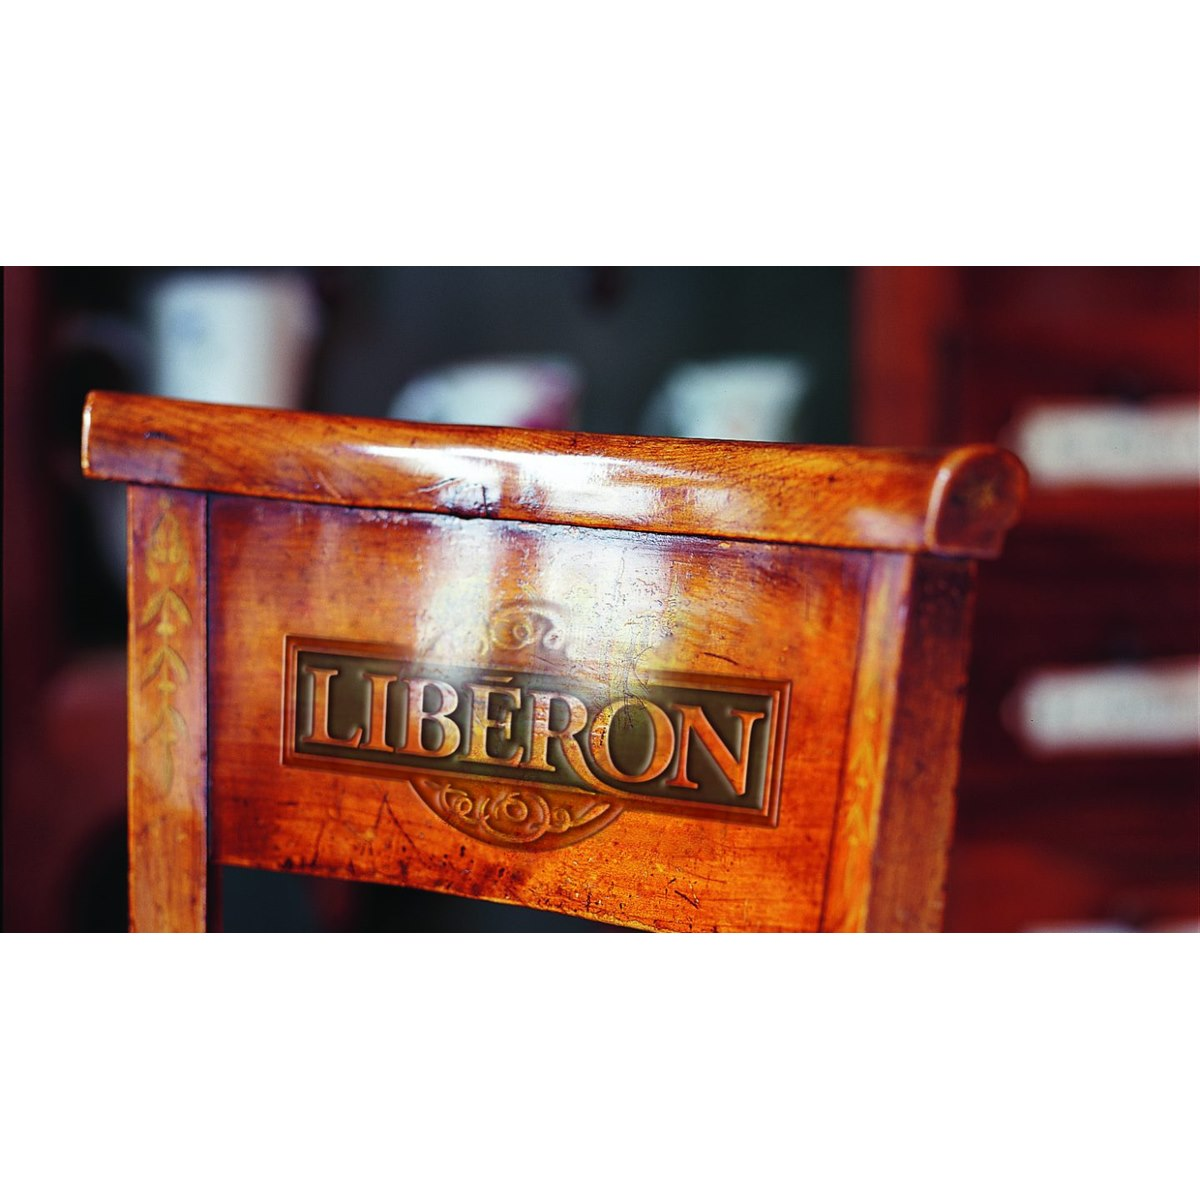 Where to buy Liberon Products